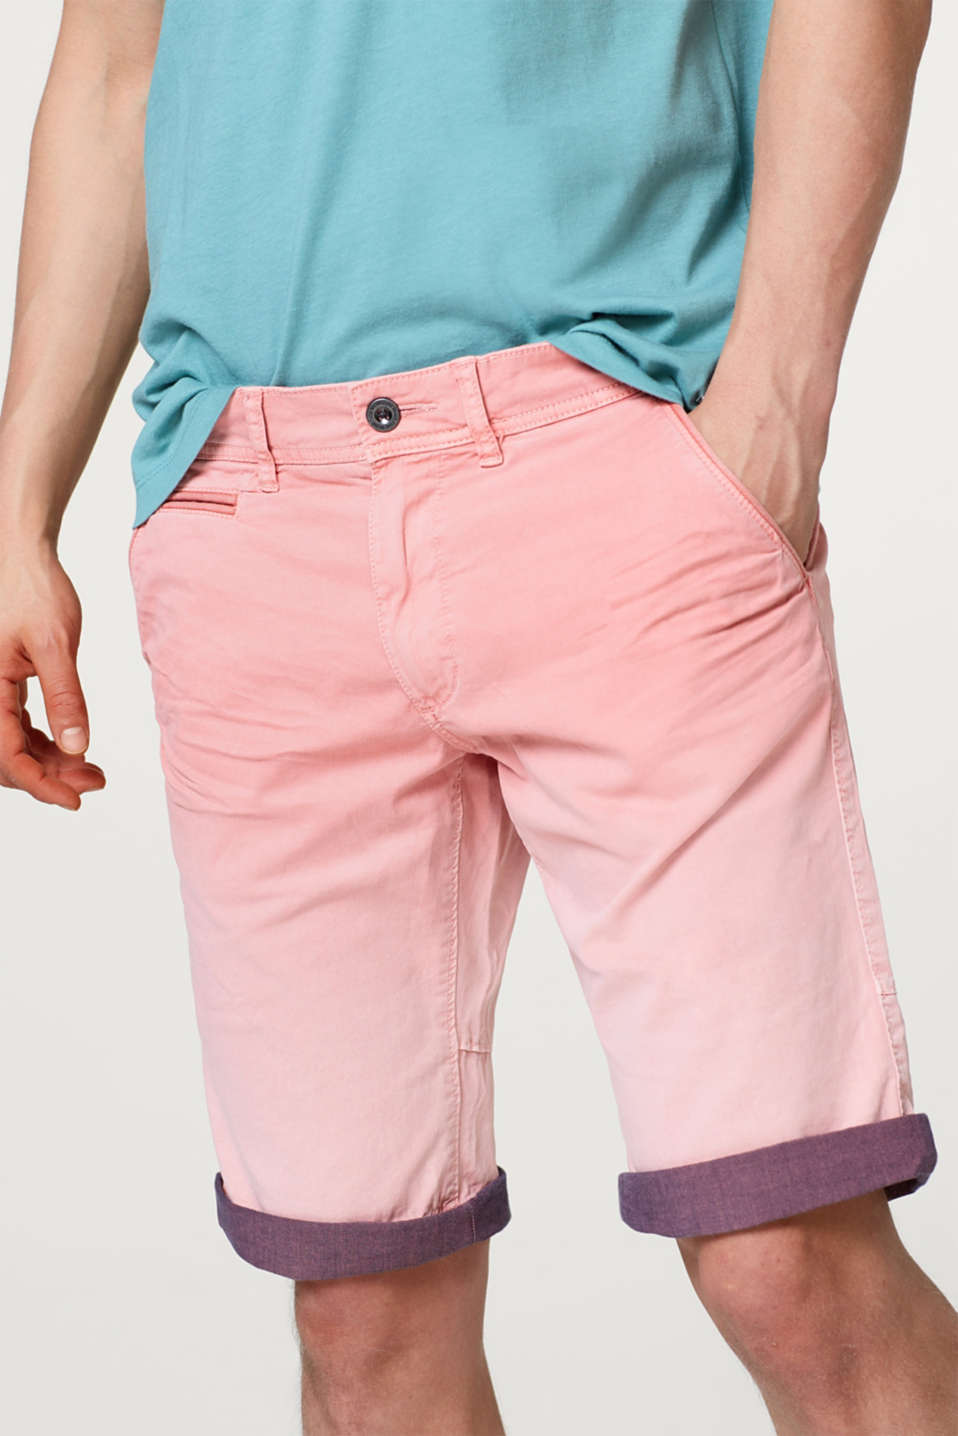 edc - Short en coton stretch, orné d'un dégradé de couleurs